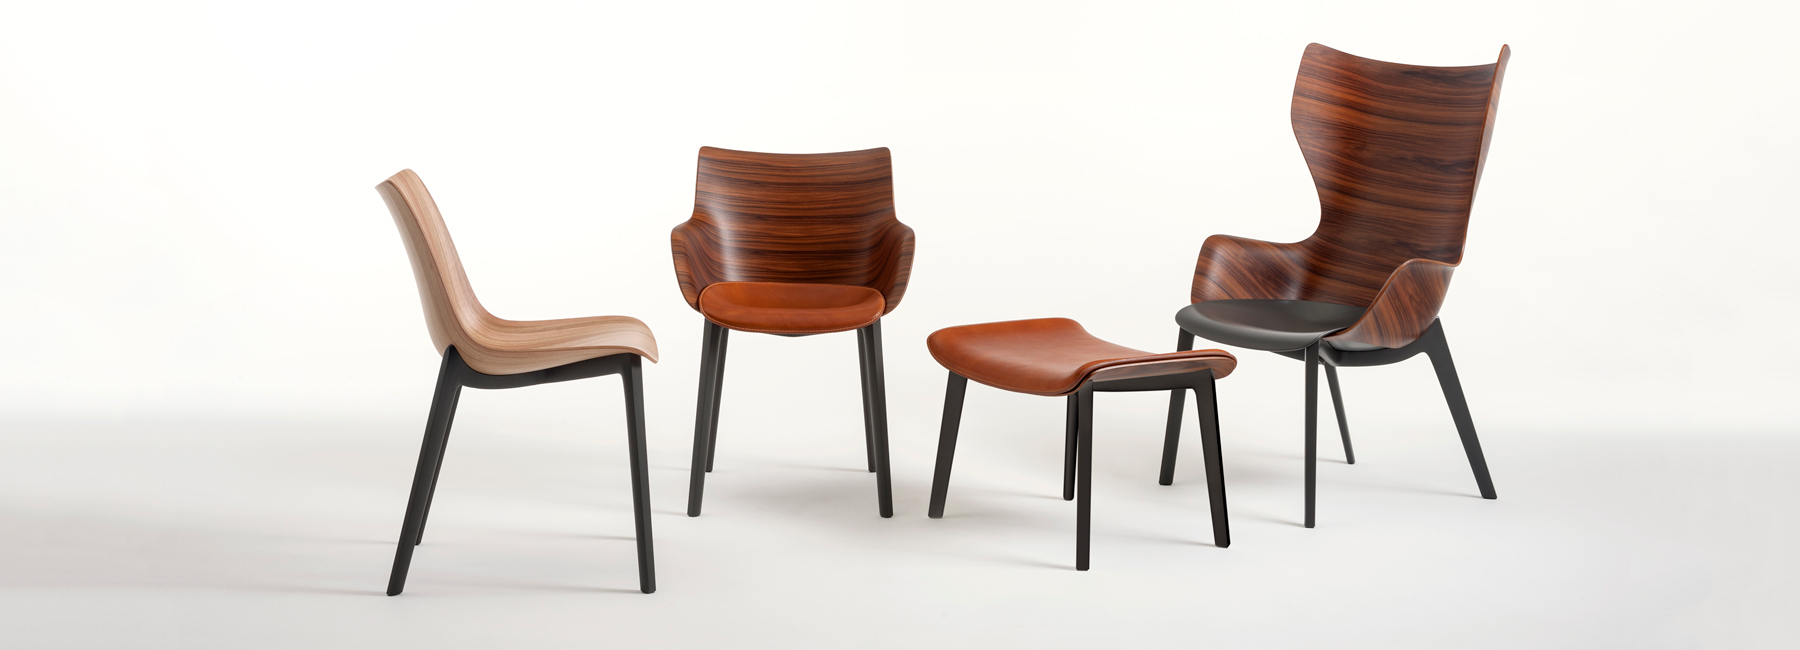 Philip Starck Philippe Starck Proves Wood Is Just As Good For Plastic Fantastic